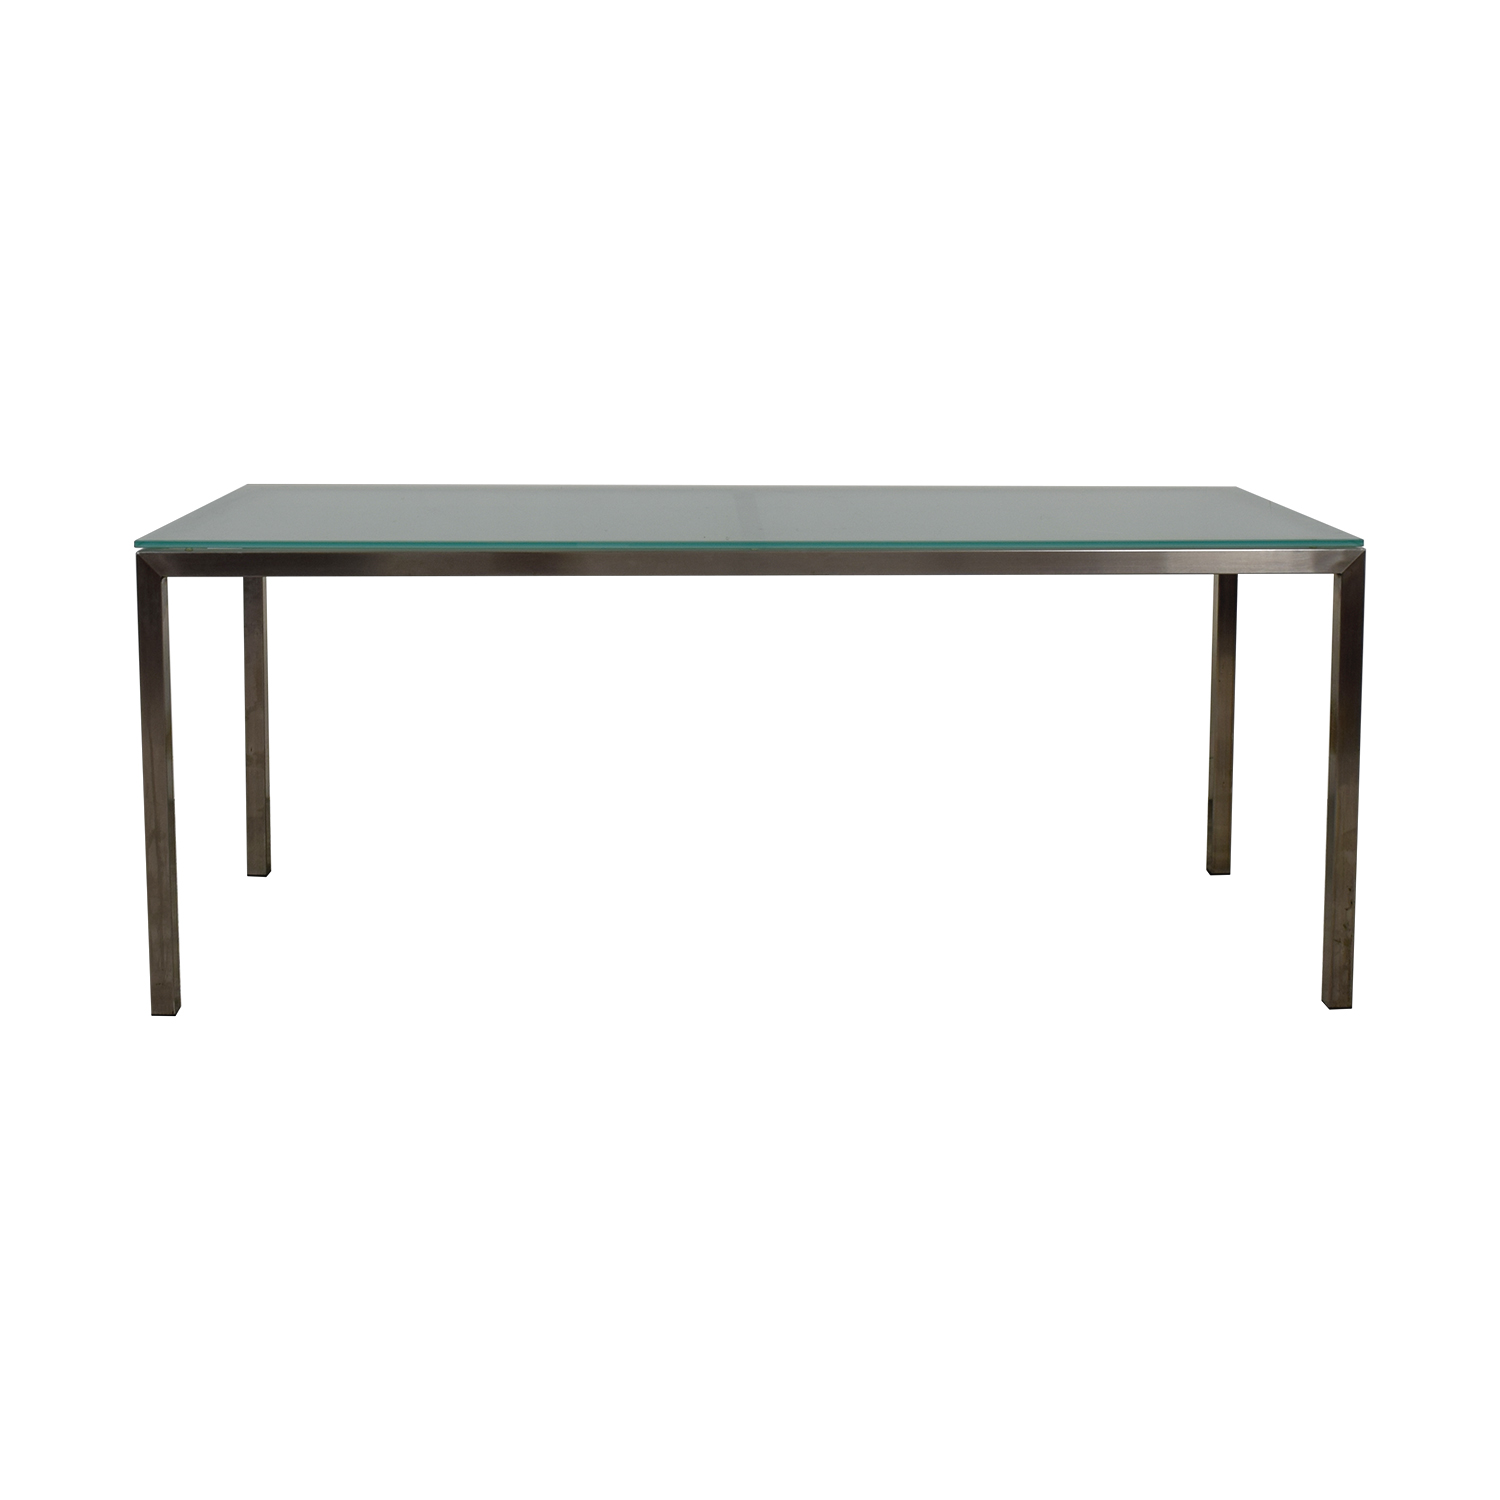 Room & Board Room & Board Portica Custom Brushed Steel and Frosted Glass Table for sale